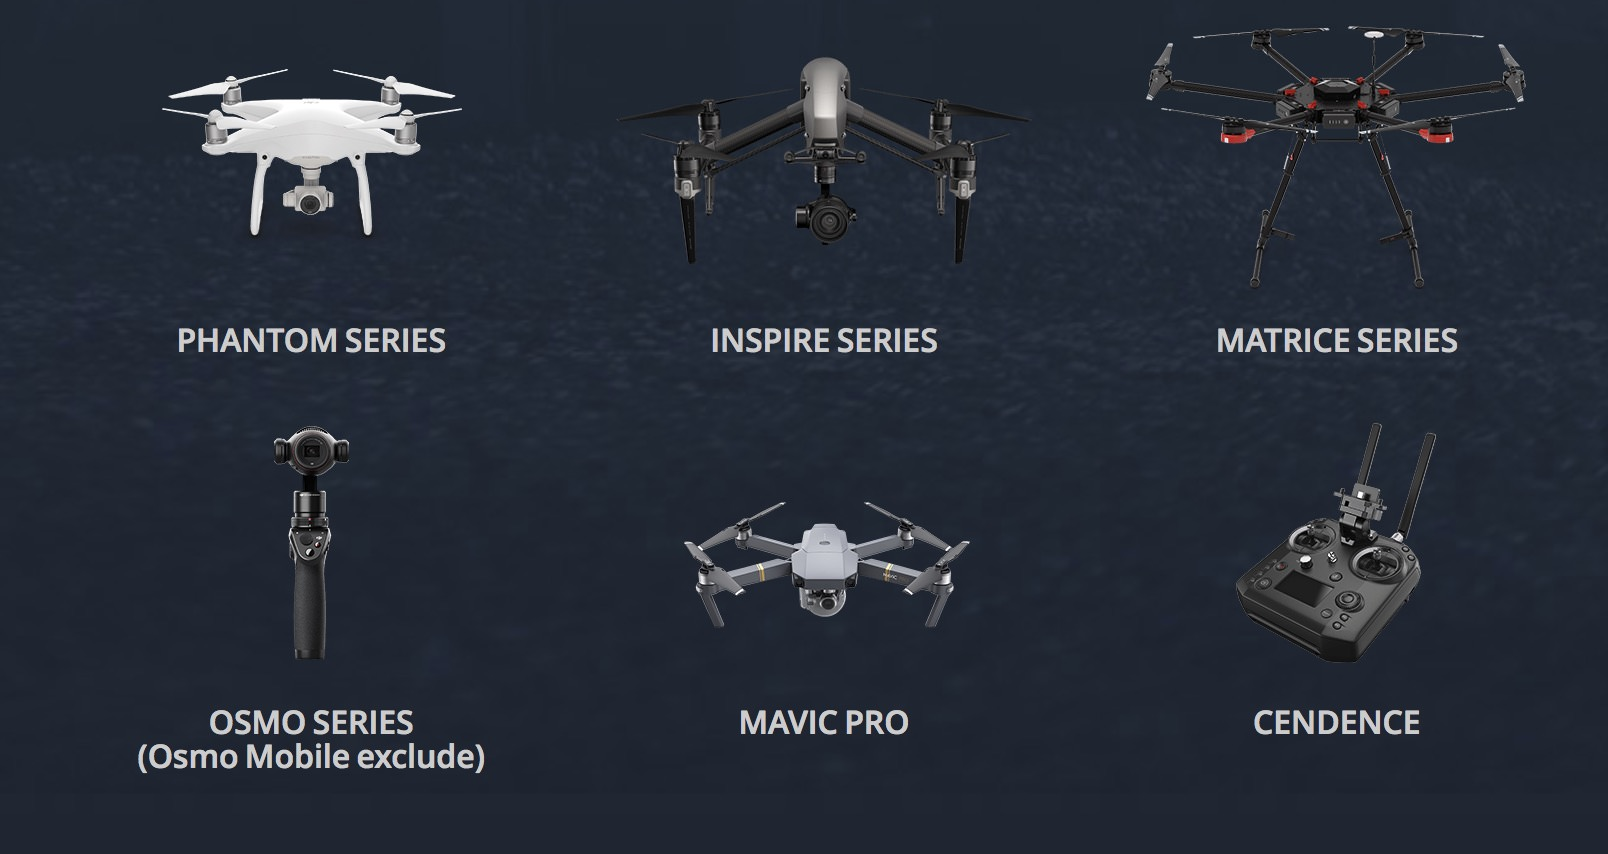 DJI CrystalSky is compatible with